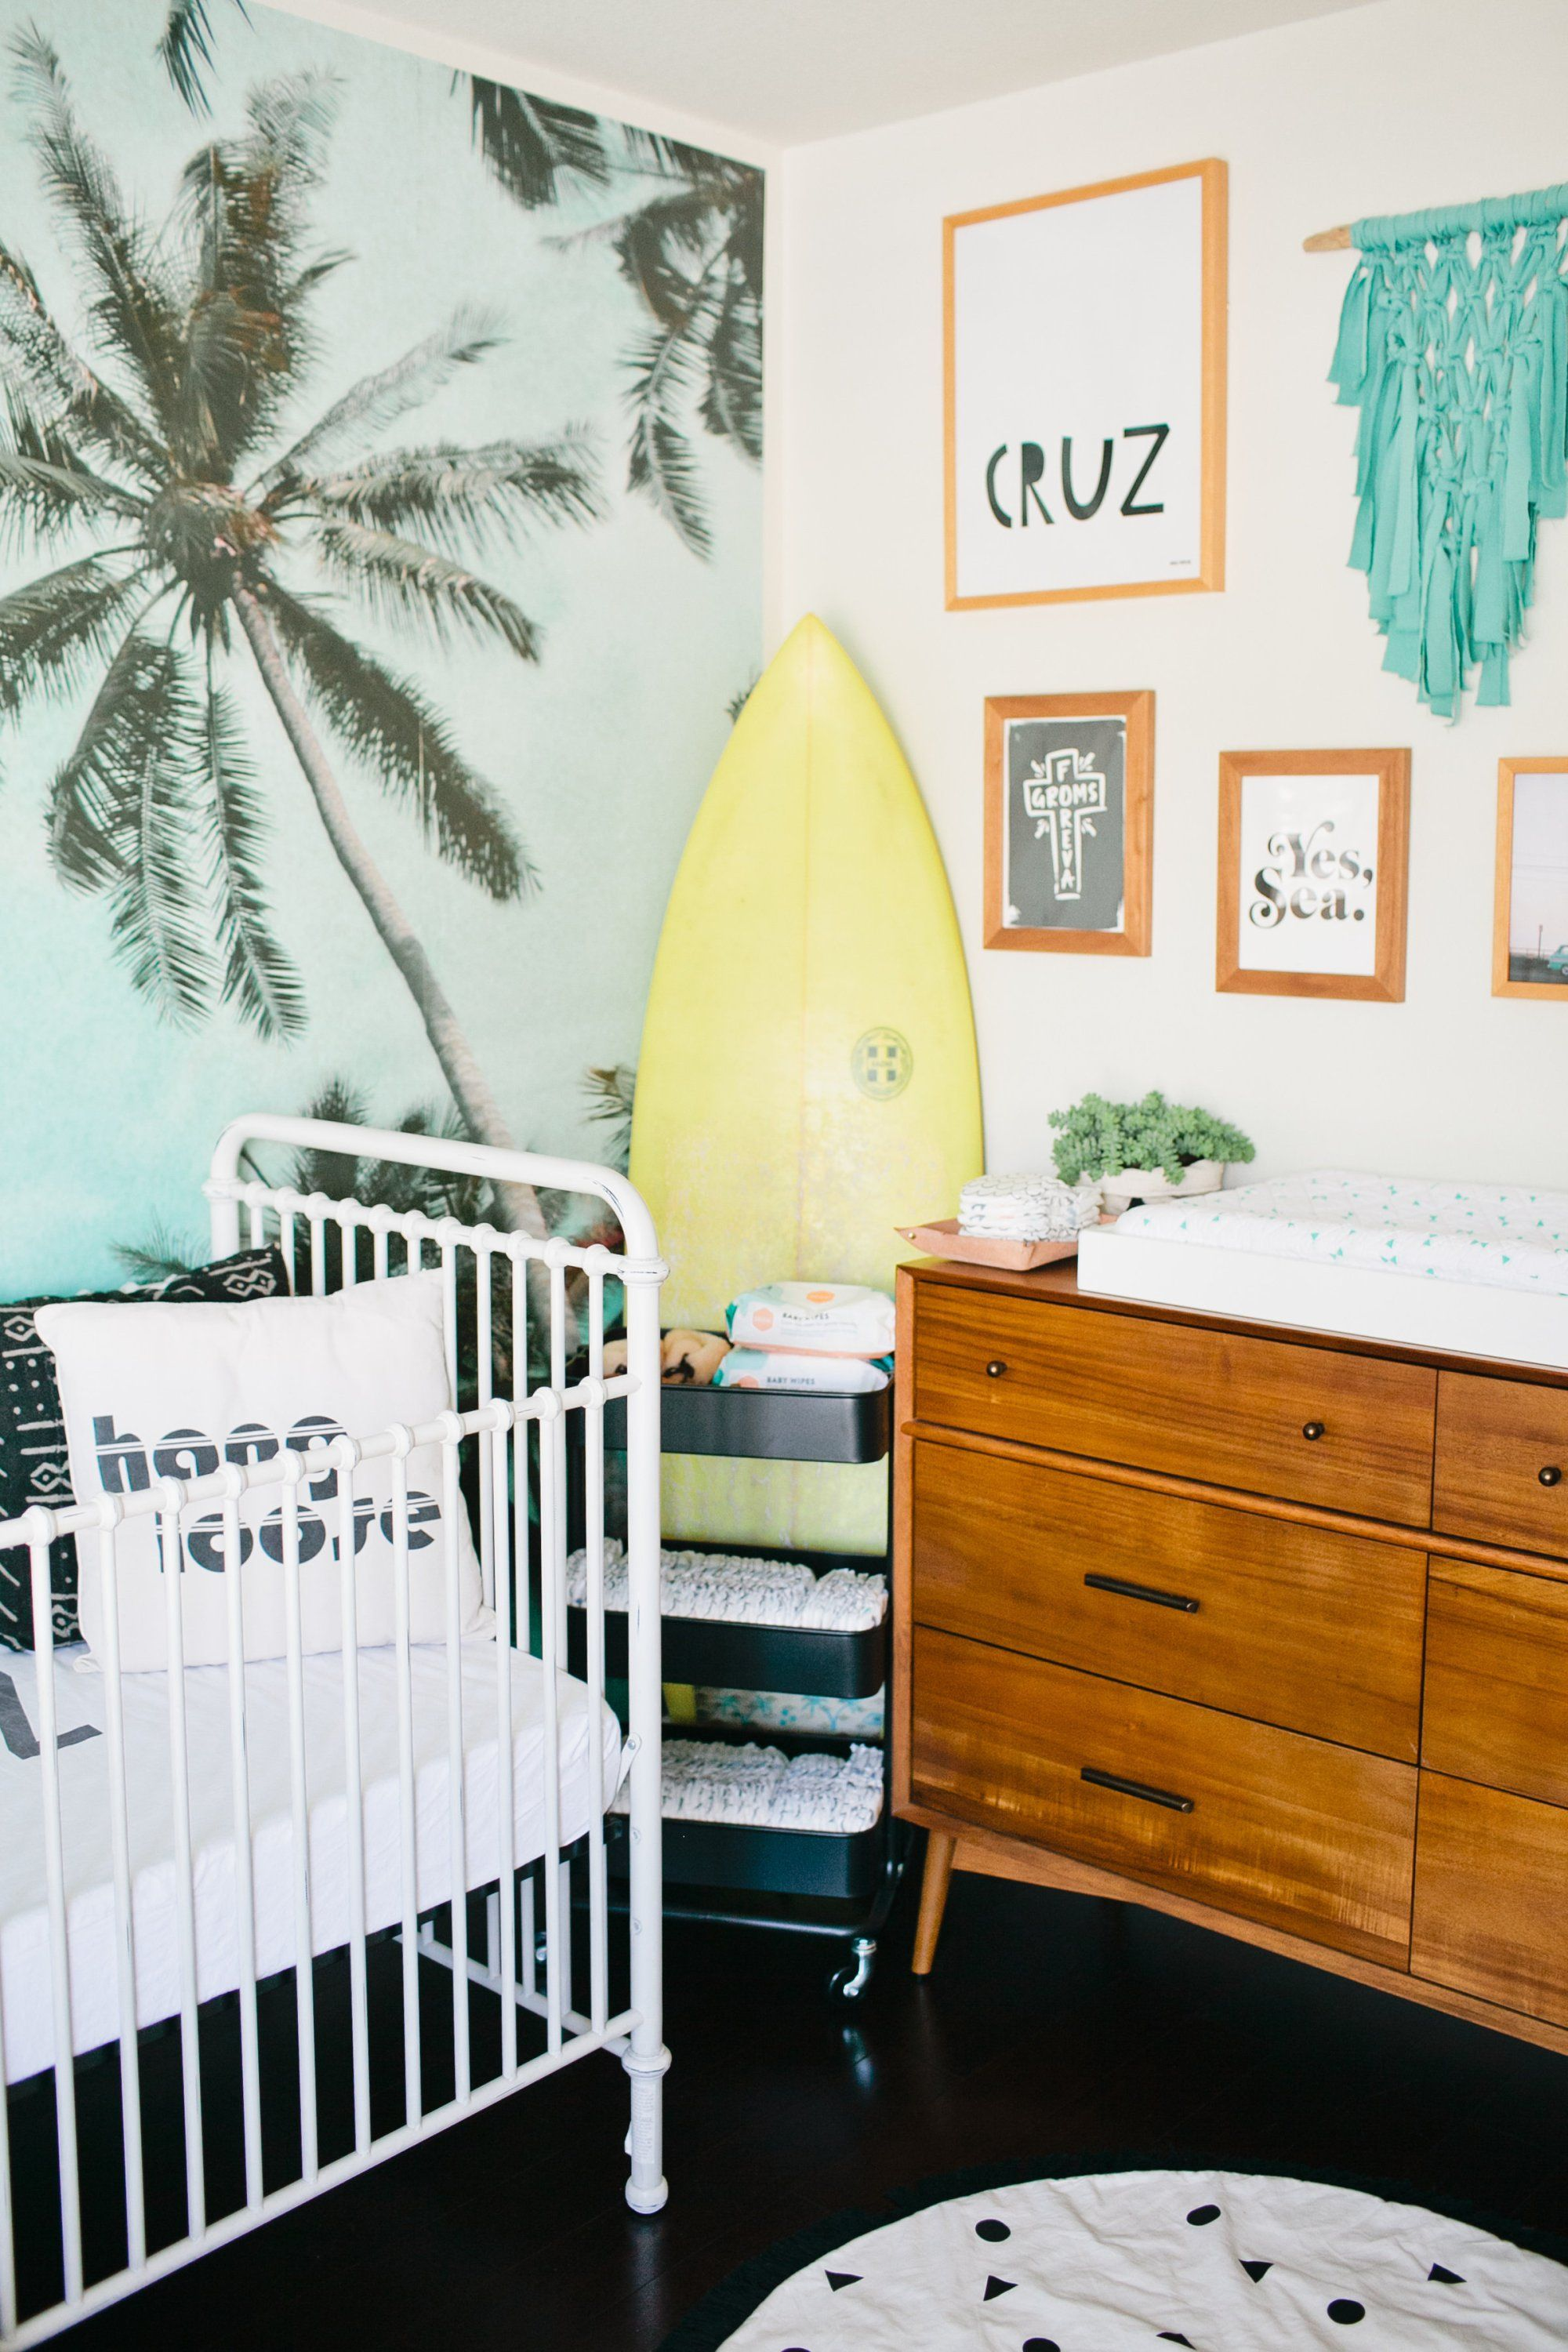 A Beach Inspired Baby Boy Nursery Designed By Beijos Event S Jacquelyn Kazas For Her Son Cruz John